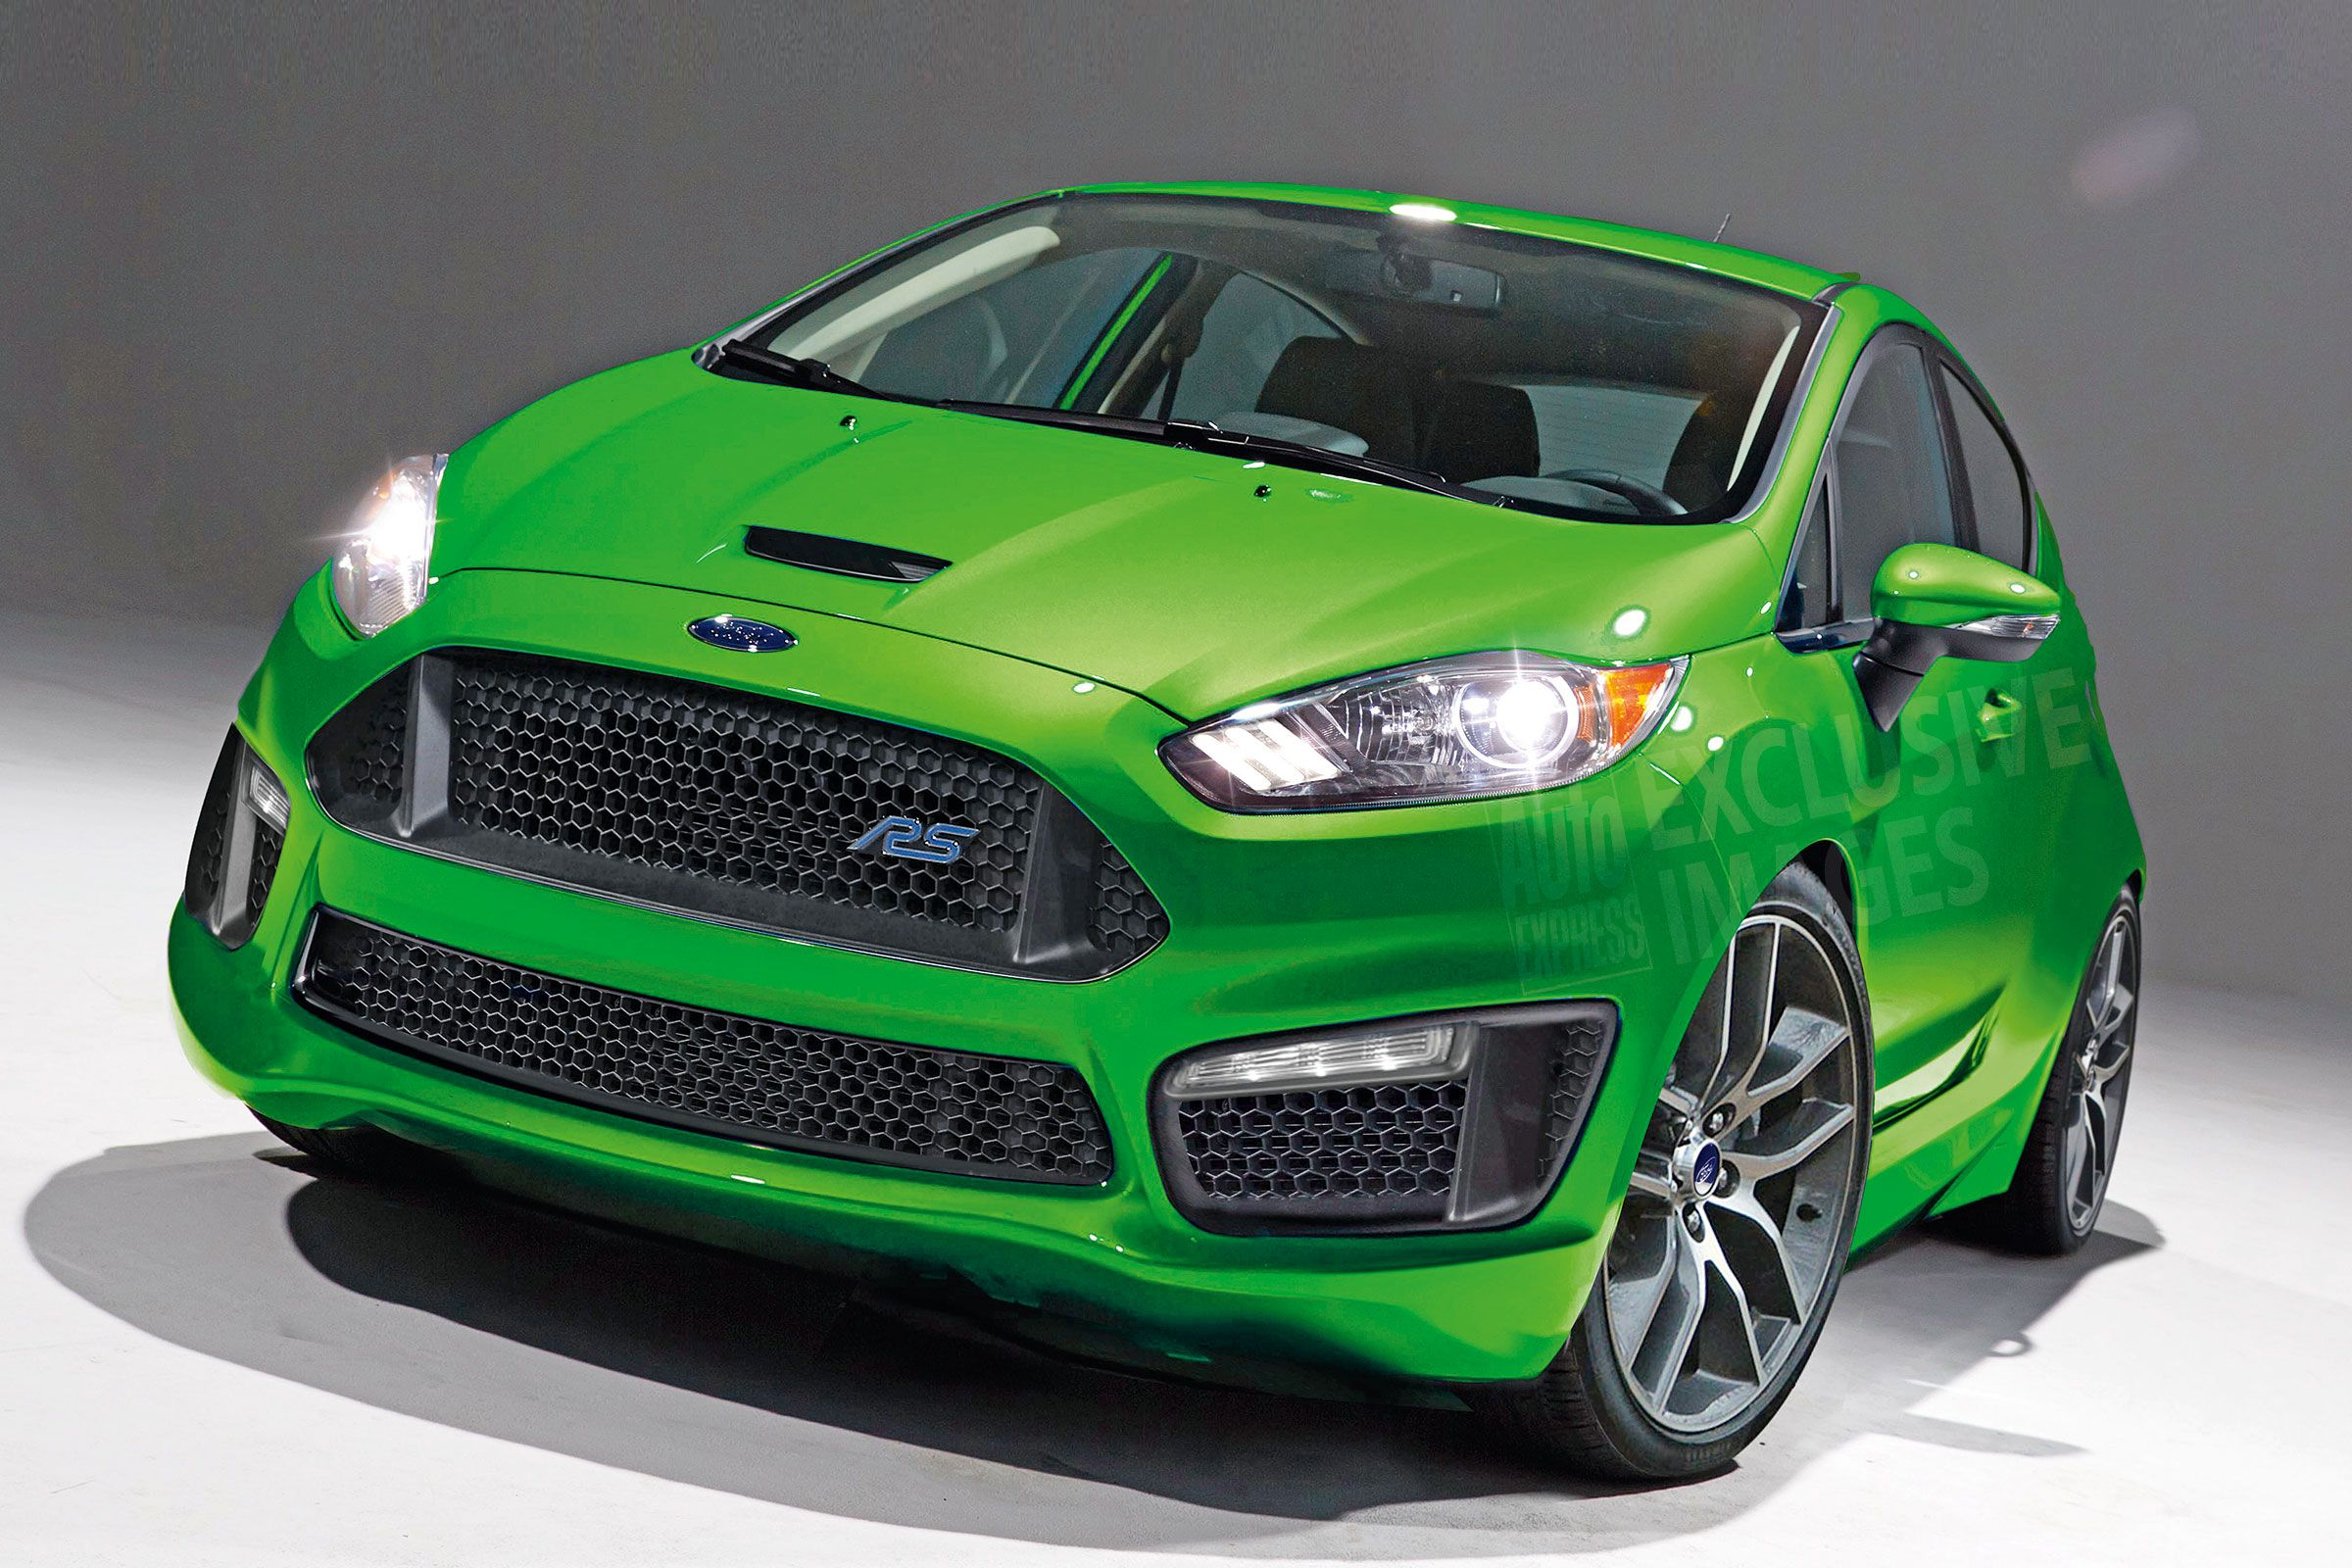 2017 ford fiesta rs price and perfomance https fordcarhq com 2017 ford fiesta rs price and perfomance cars photos pinterest ford car photos and